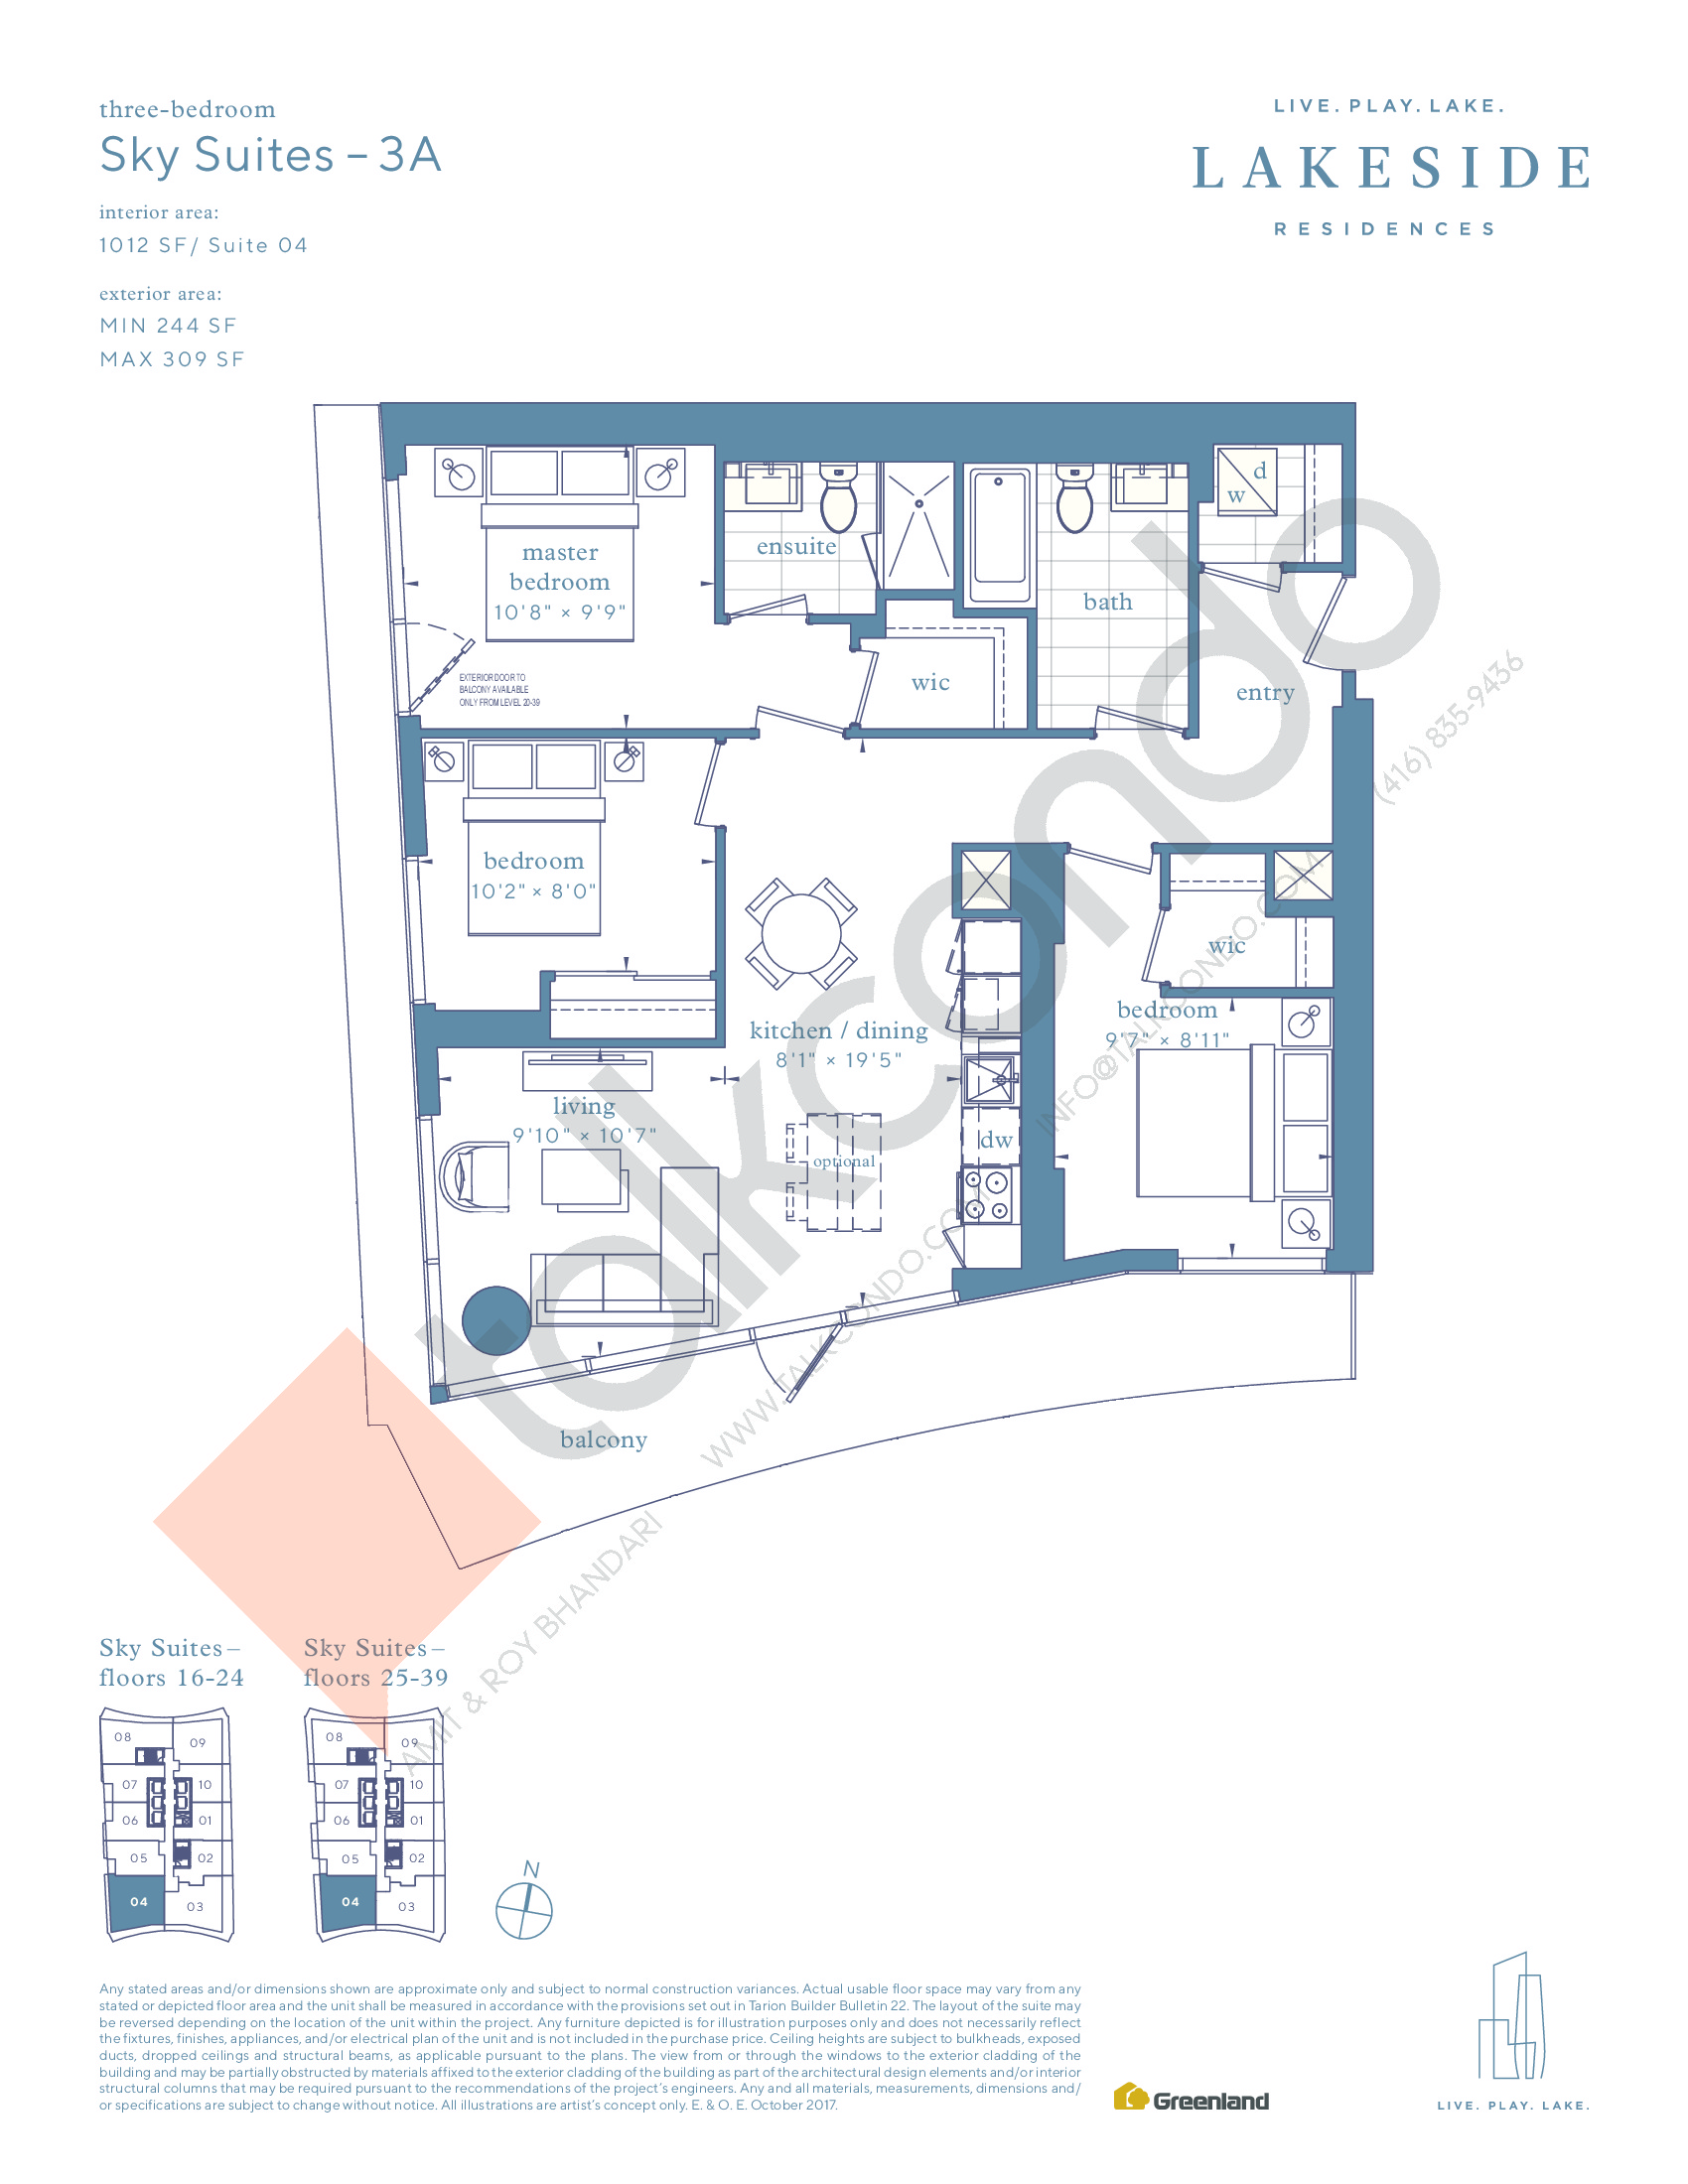 Sky Suites - 3A Floor Plan at Lakeside Residences - 1012 sq.ft